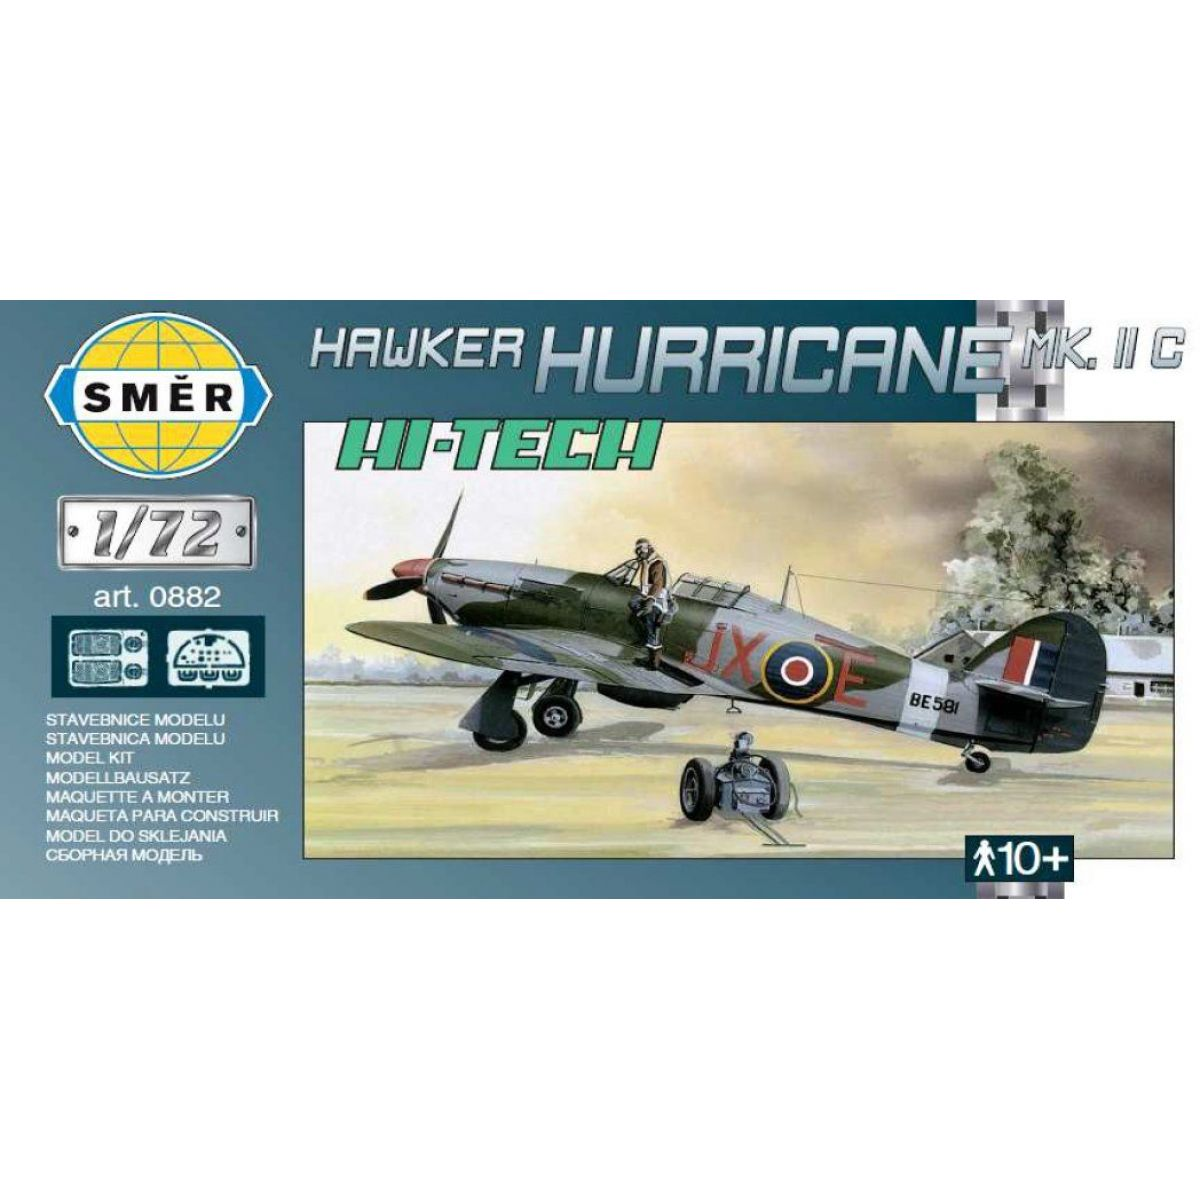 Směr Model Hawker Hurricane MK.II HI TECH 1:72